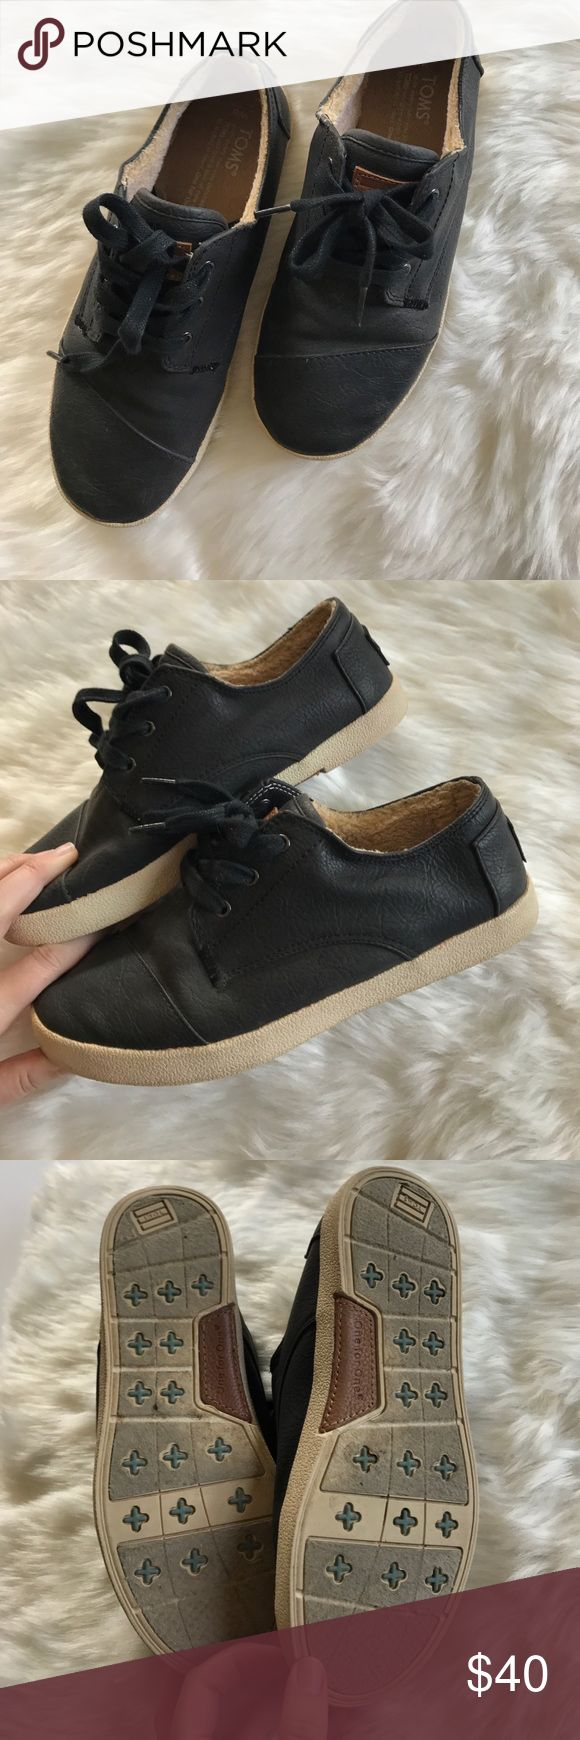 TOMS black leather sneakers Black lace up sneakers. Inside is lined. Toms Shoes Sneakers